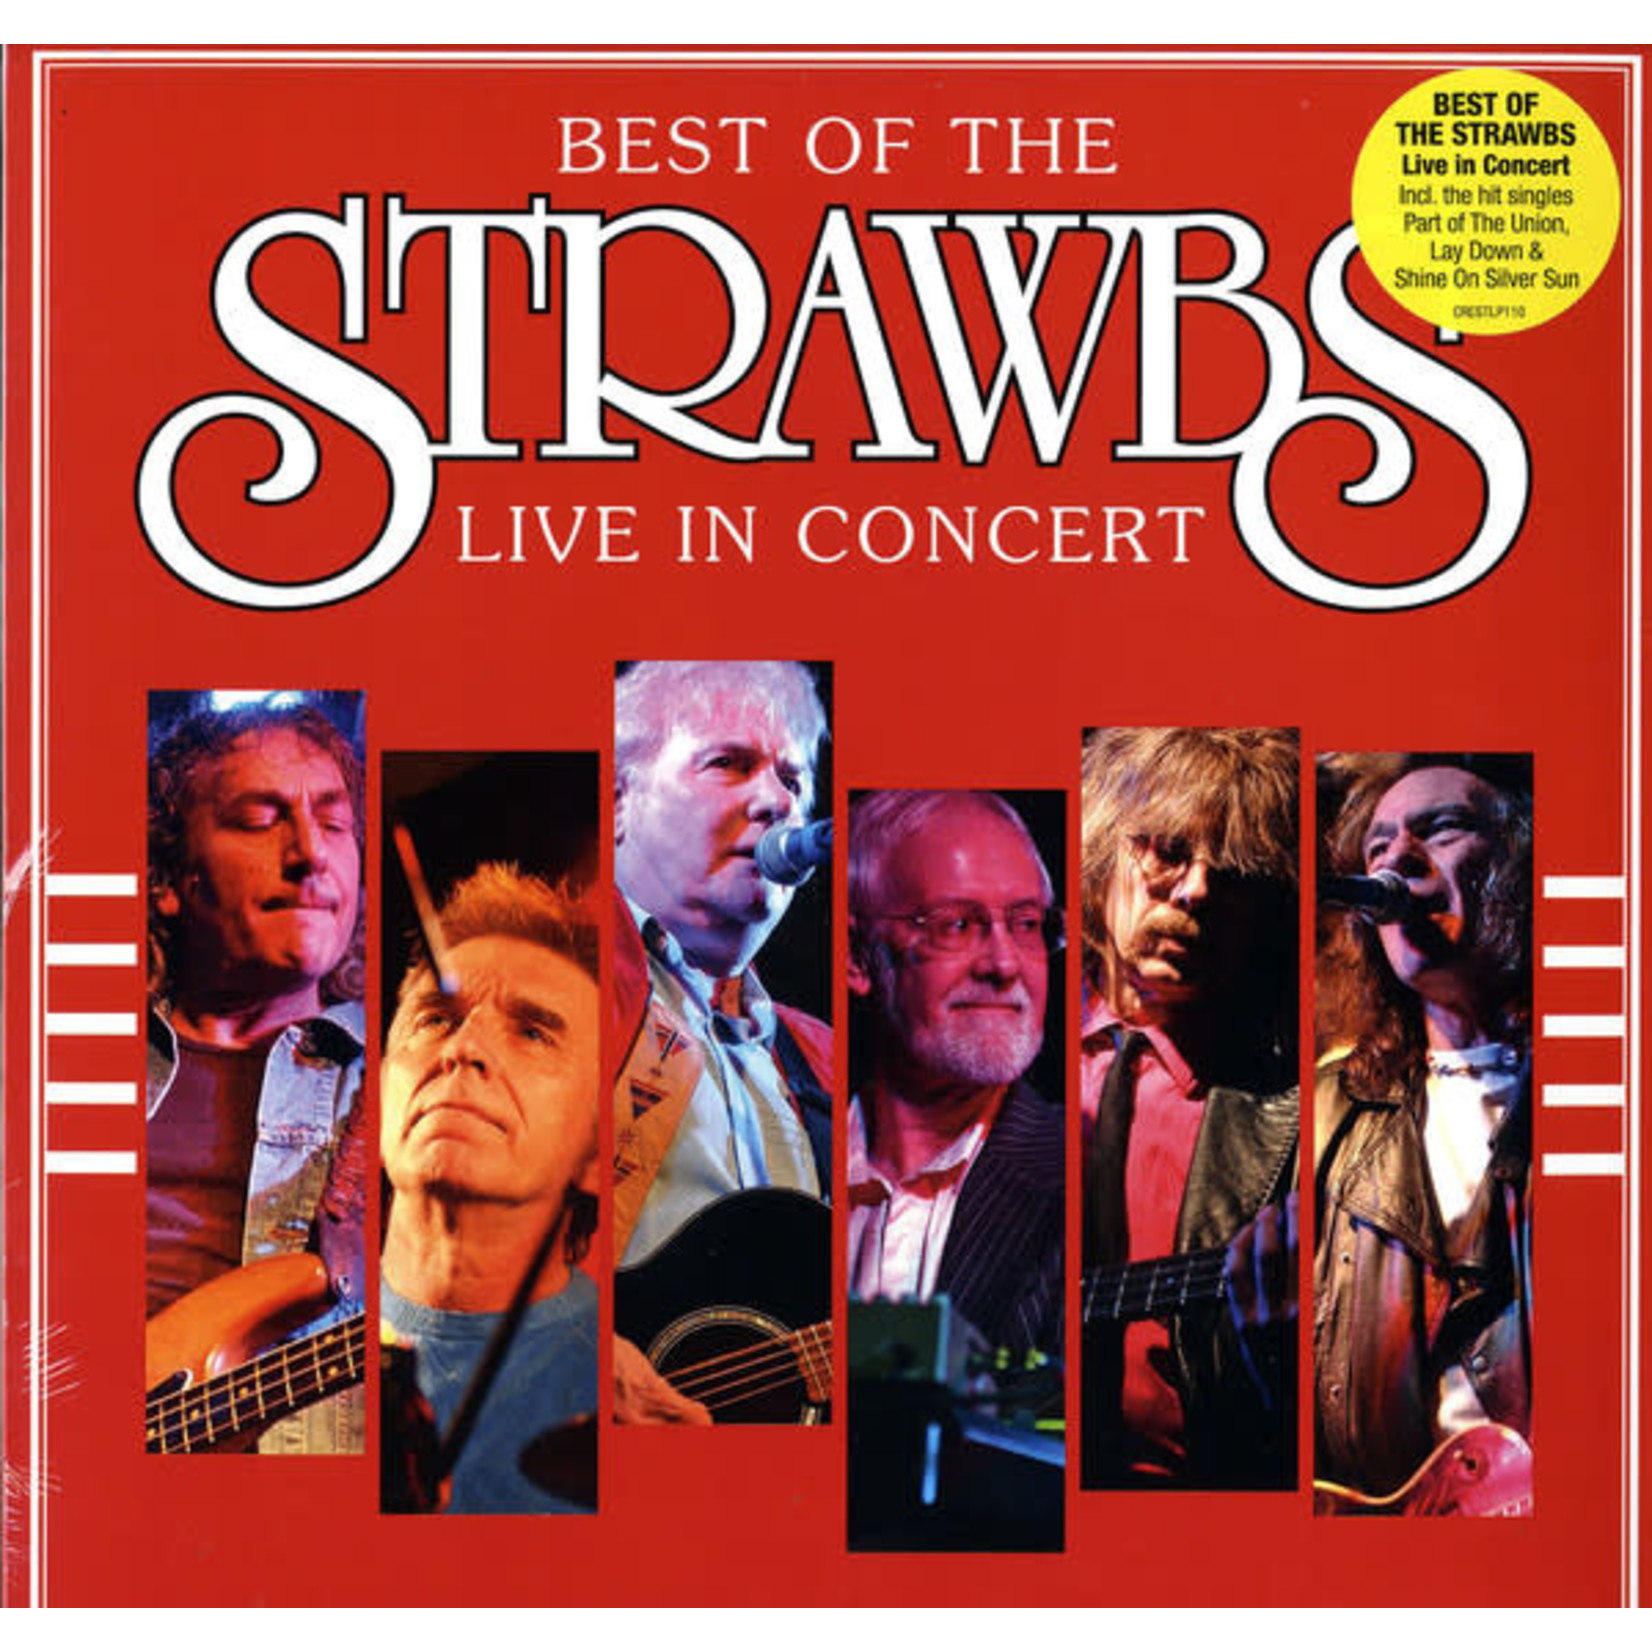 THE STRAWBS BEST OF: LIVE IN CONCERT  LP